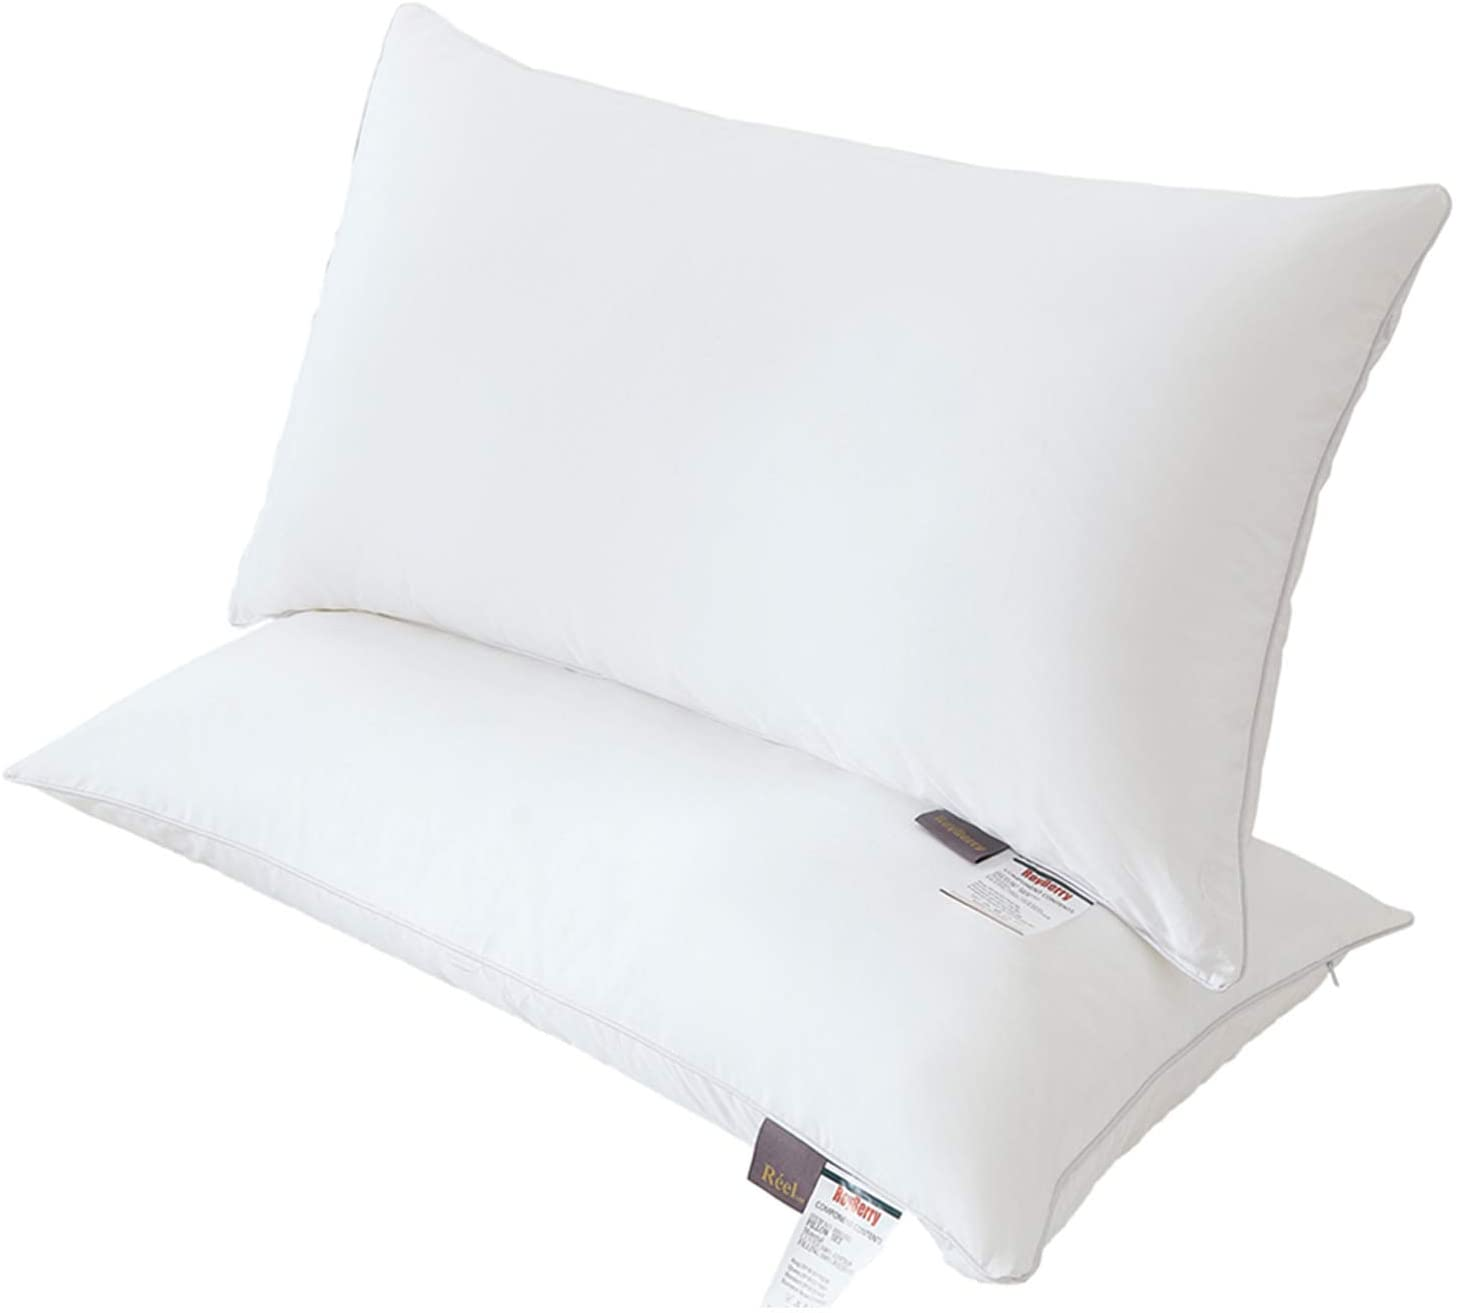 Royberry Pure Cotton Bed Pillows Double Cloth Luxury Plush Pillow Dust Resistant & Ultra Soft Hotel Pillows for Sleeping